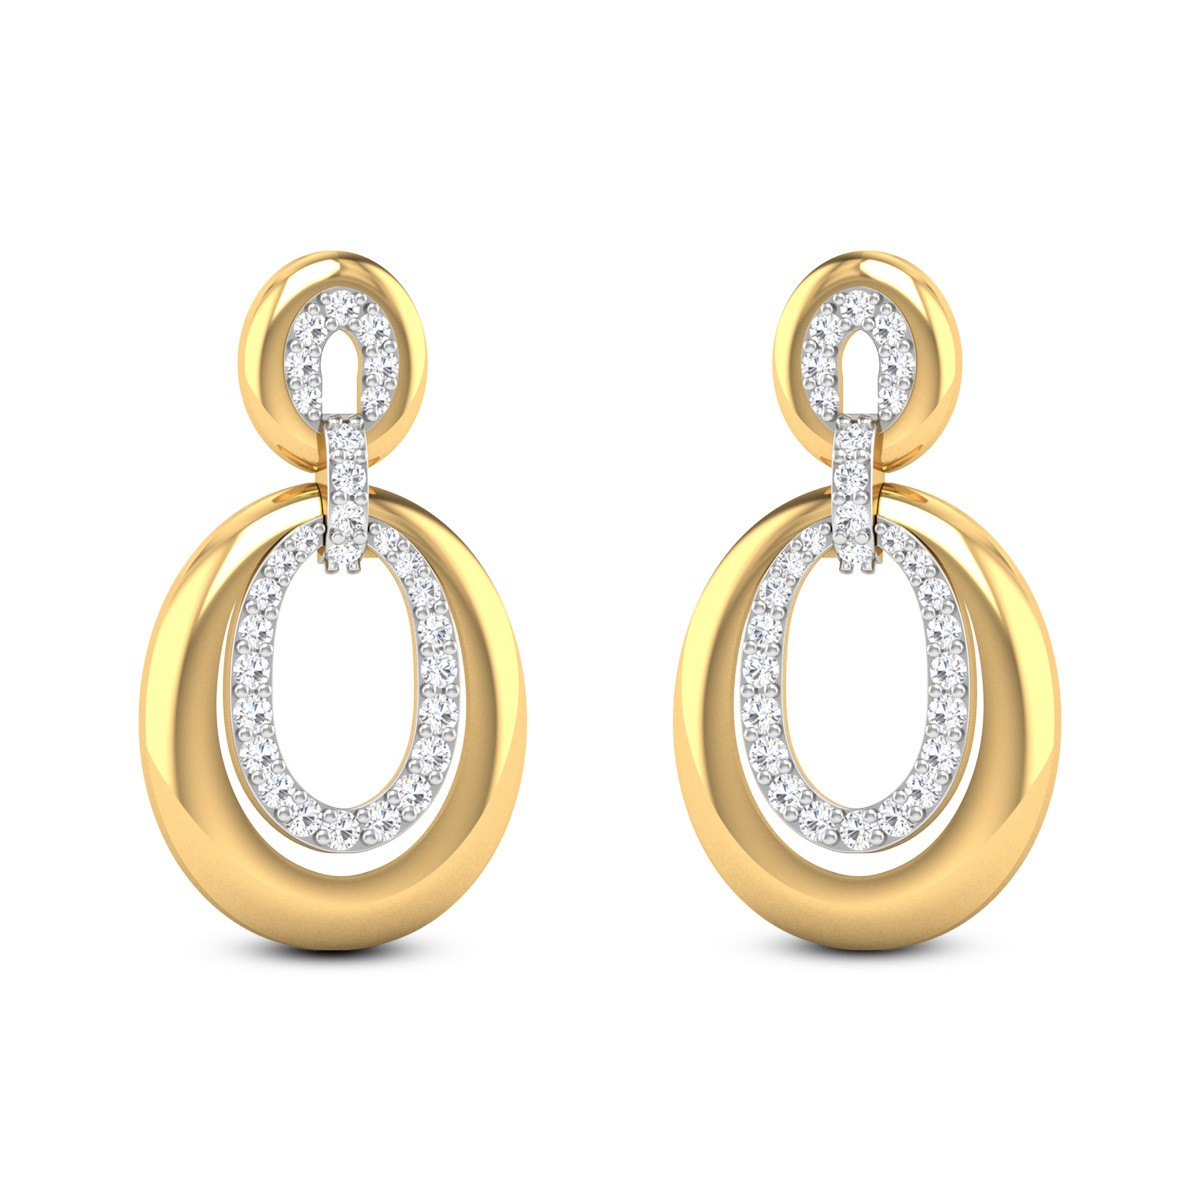 Carefree Cheer Diamond Earrings